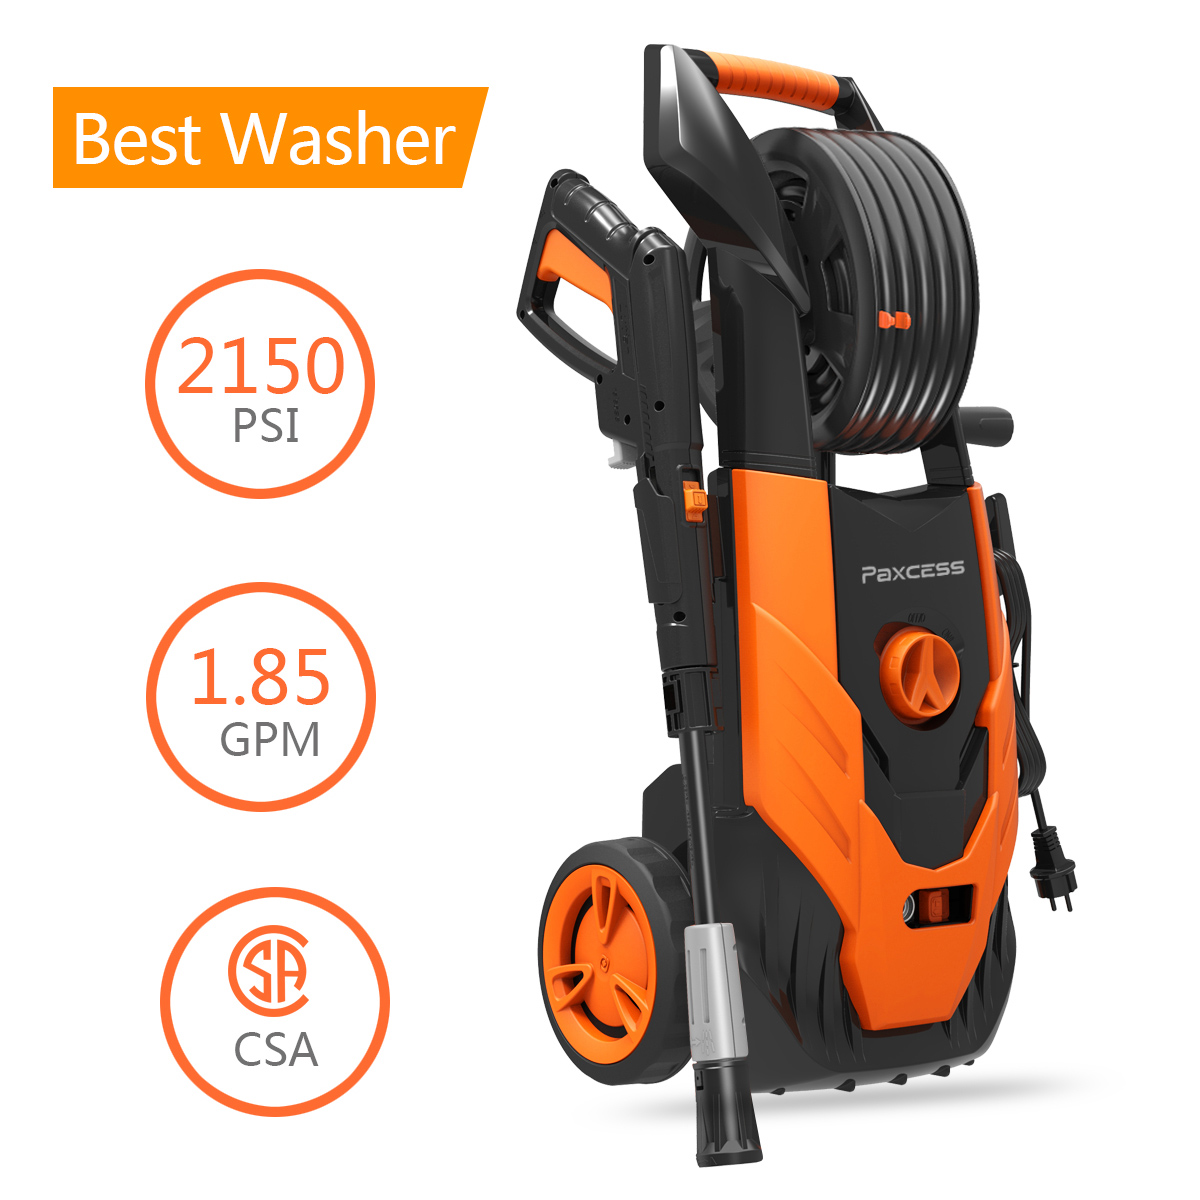 Paxcess 2150 PSI Electric Pressure Washer 1.85 GPM With Spray Gun, Adjustable Nozzle For Car/Vehicle/Floor/Wall/Furniture/Outdoor (CSA Approved)